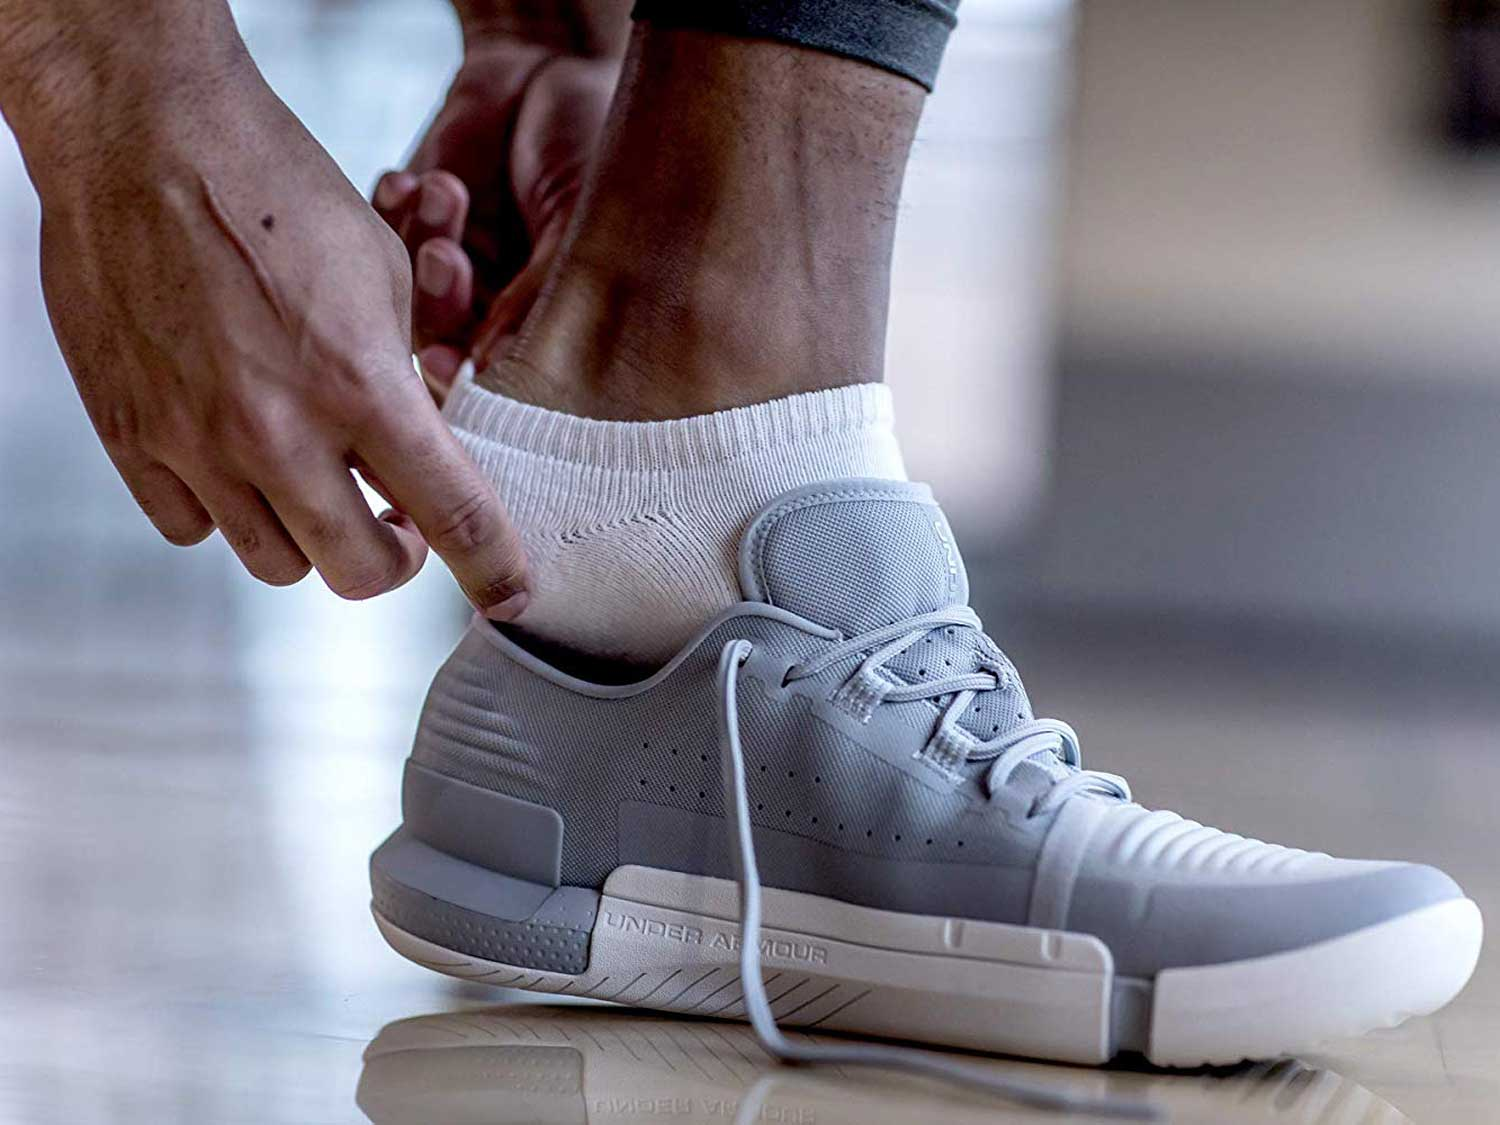 Putting shoe on over ankle socks